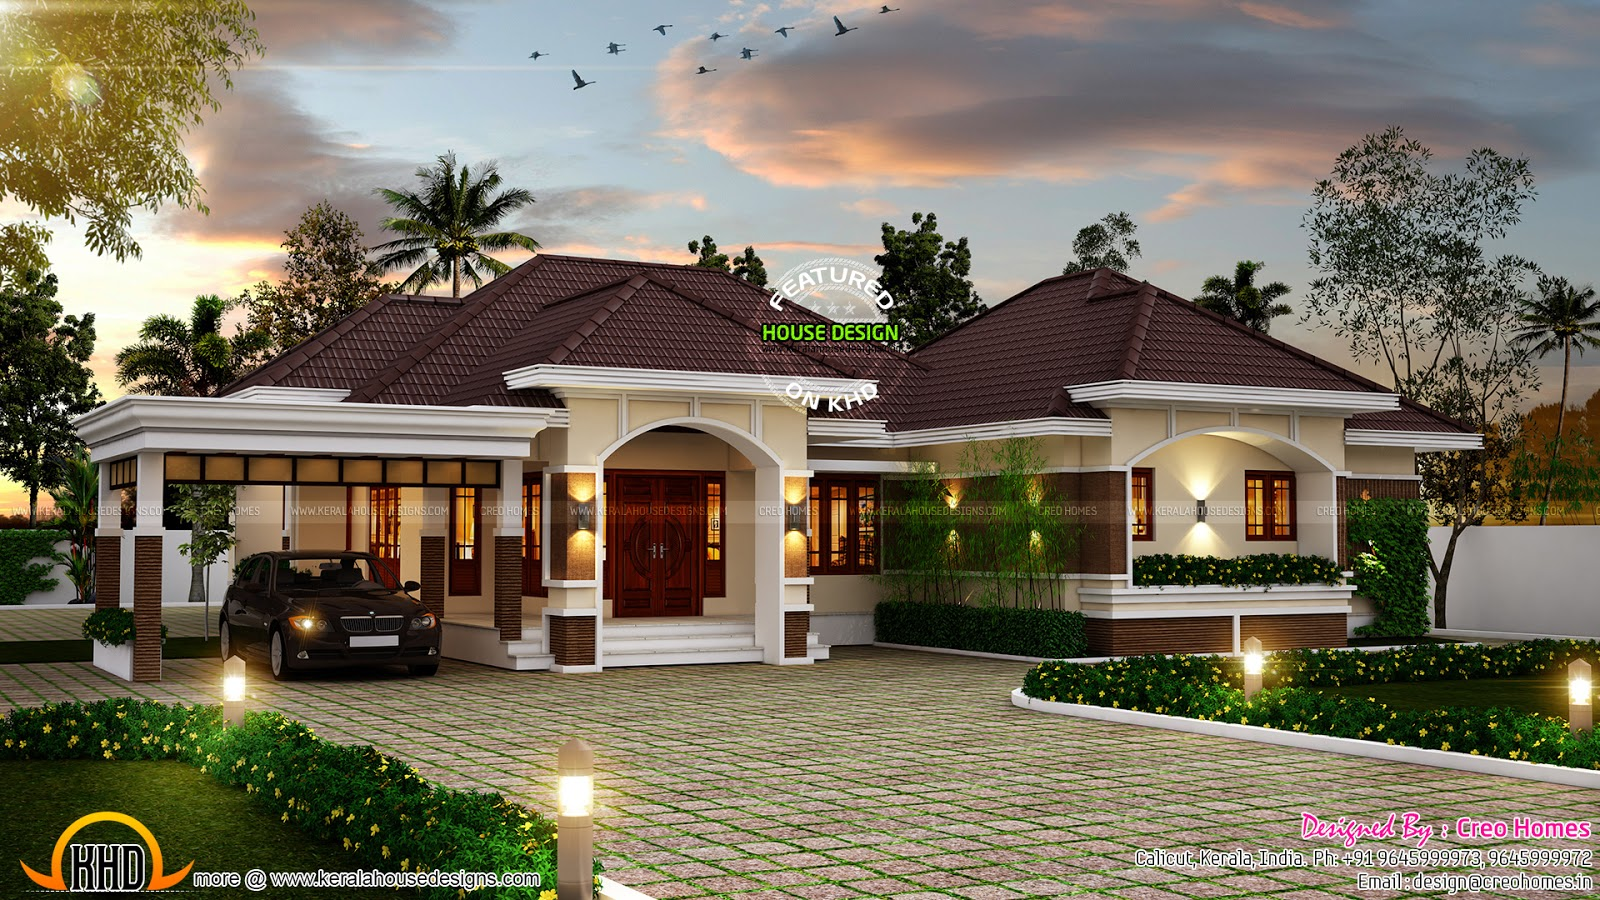 Outstanding bungalow in kerala kerala home design and for Kerala style home